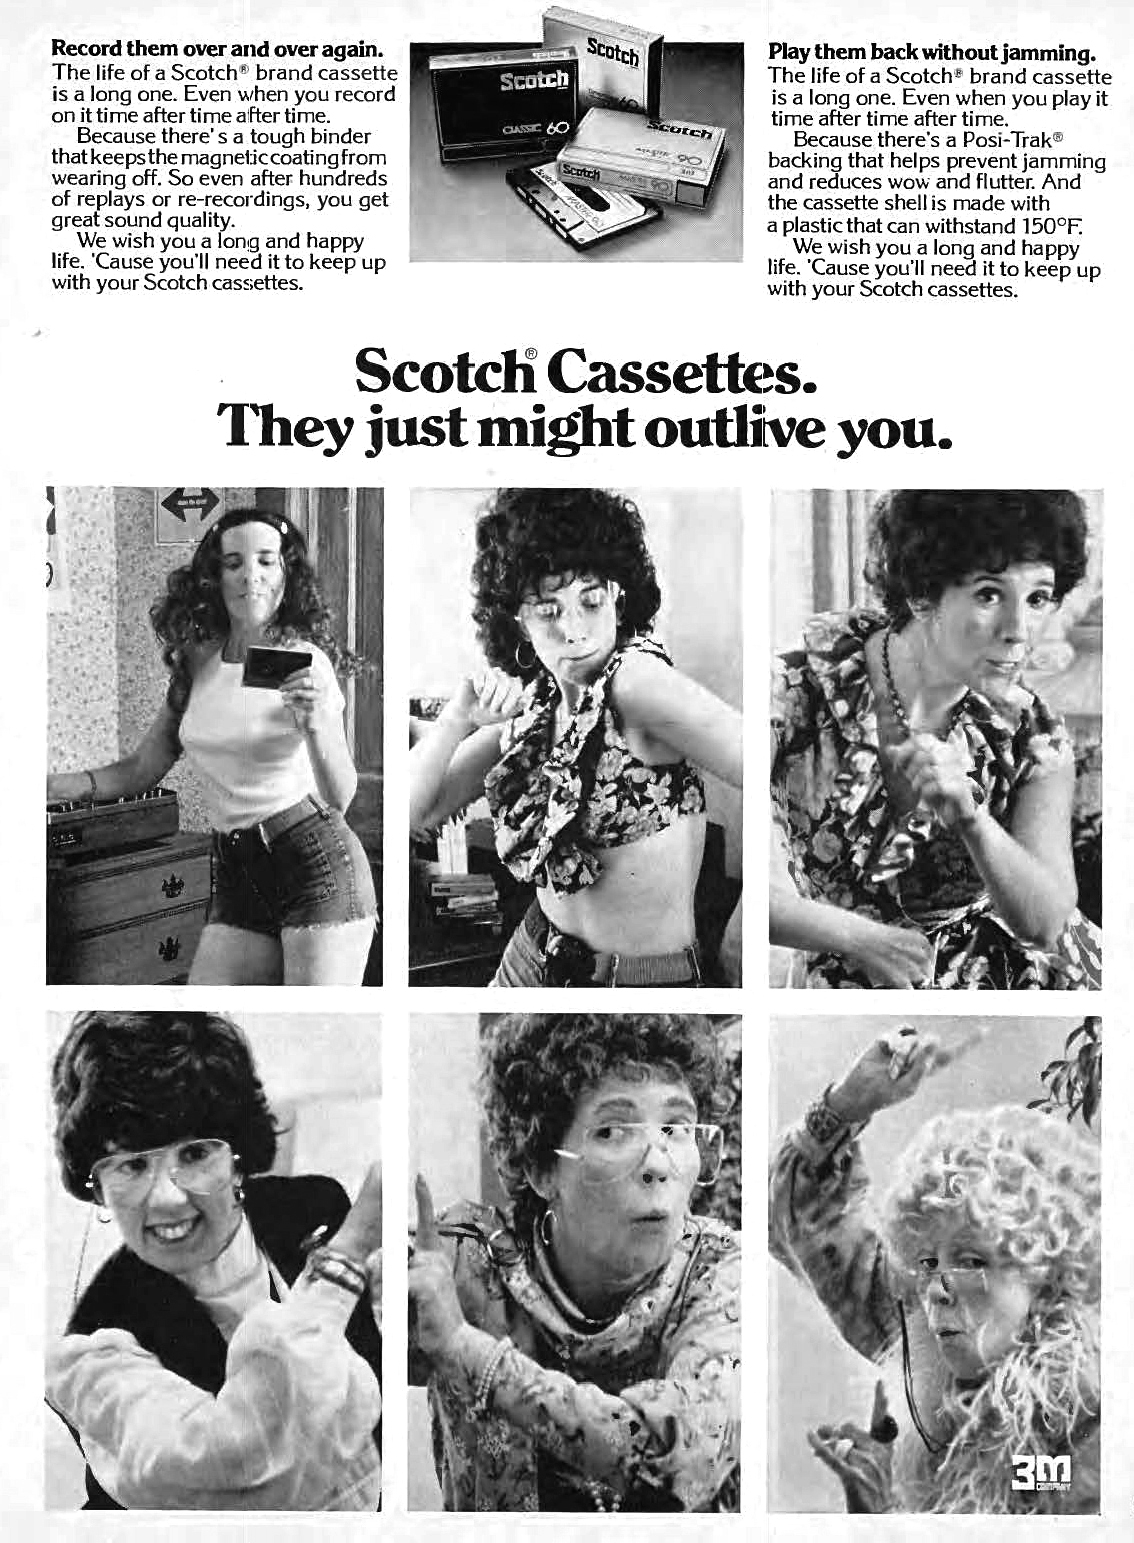 scotch_age_cassette-ad-playboy-magazine-09-september-1976.jpg